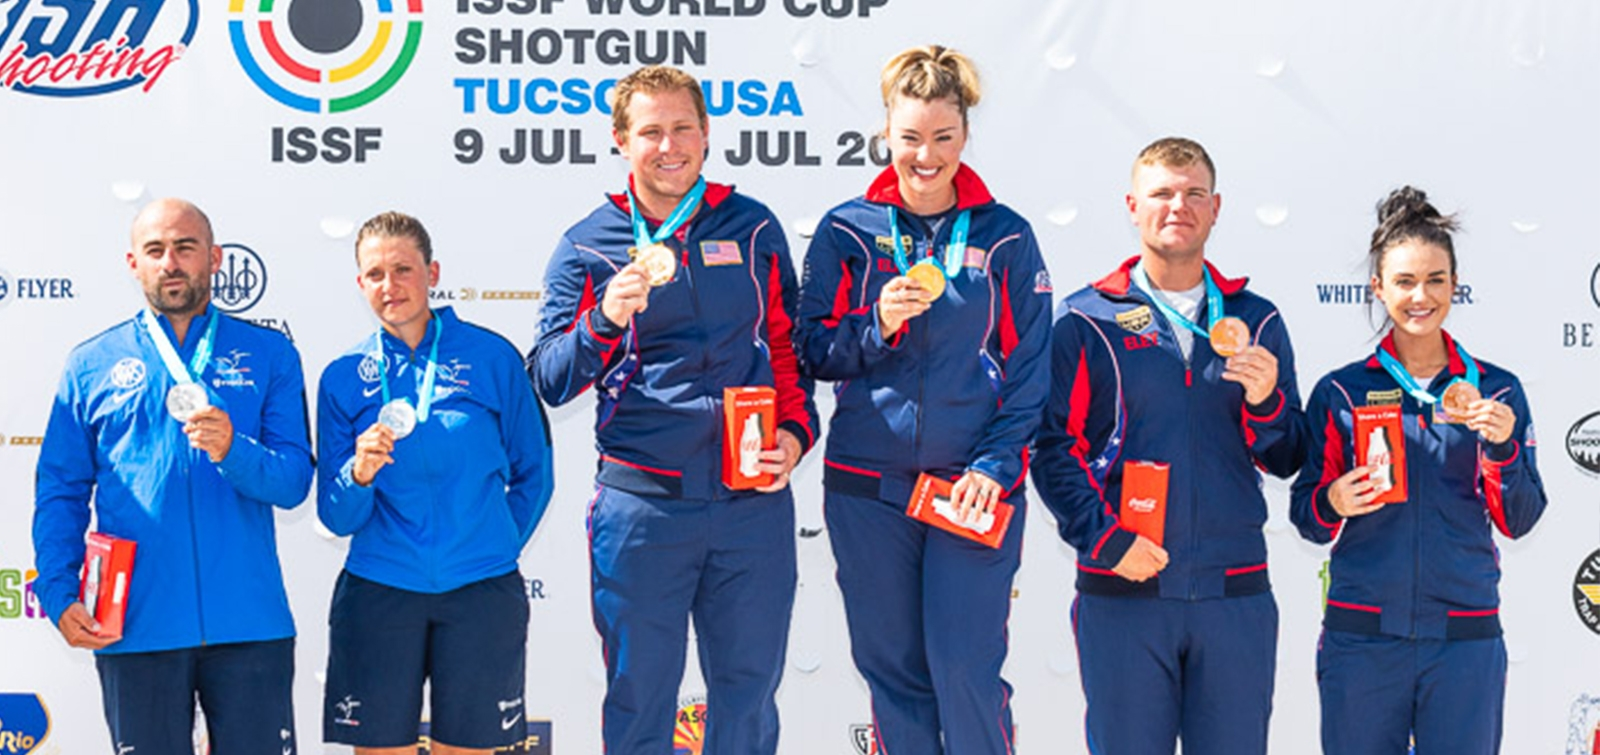 ISSF WORLD CUP TRAP EQUIPOS MIXTOS EN TUCSON (USA)